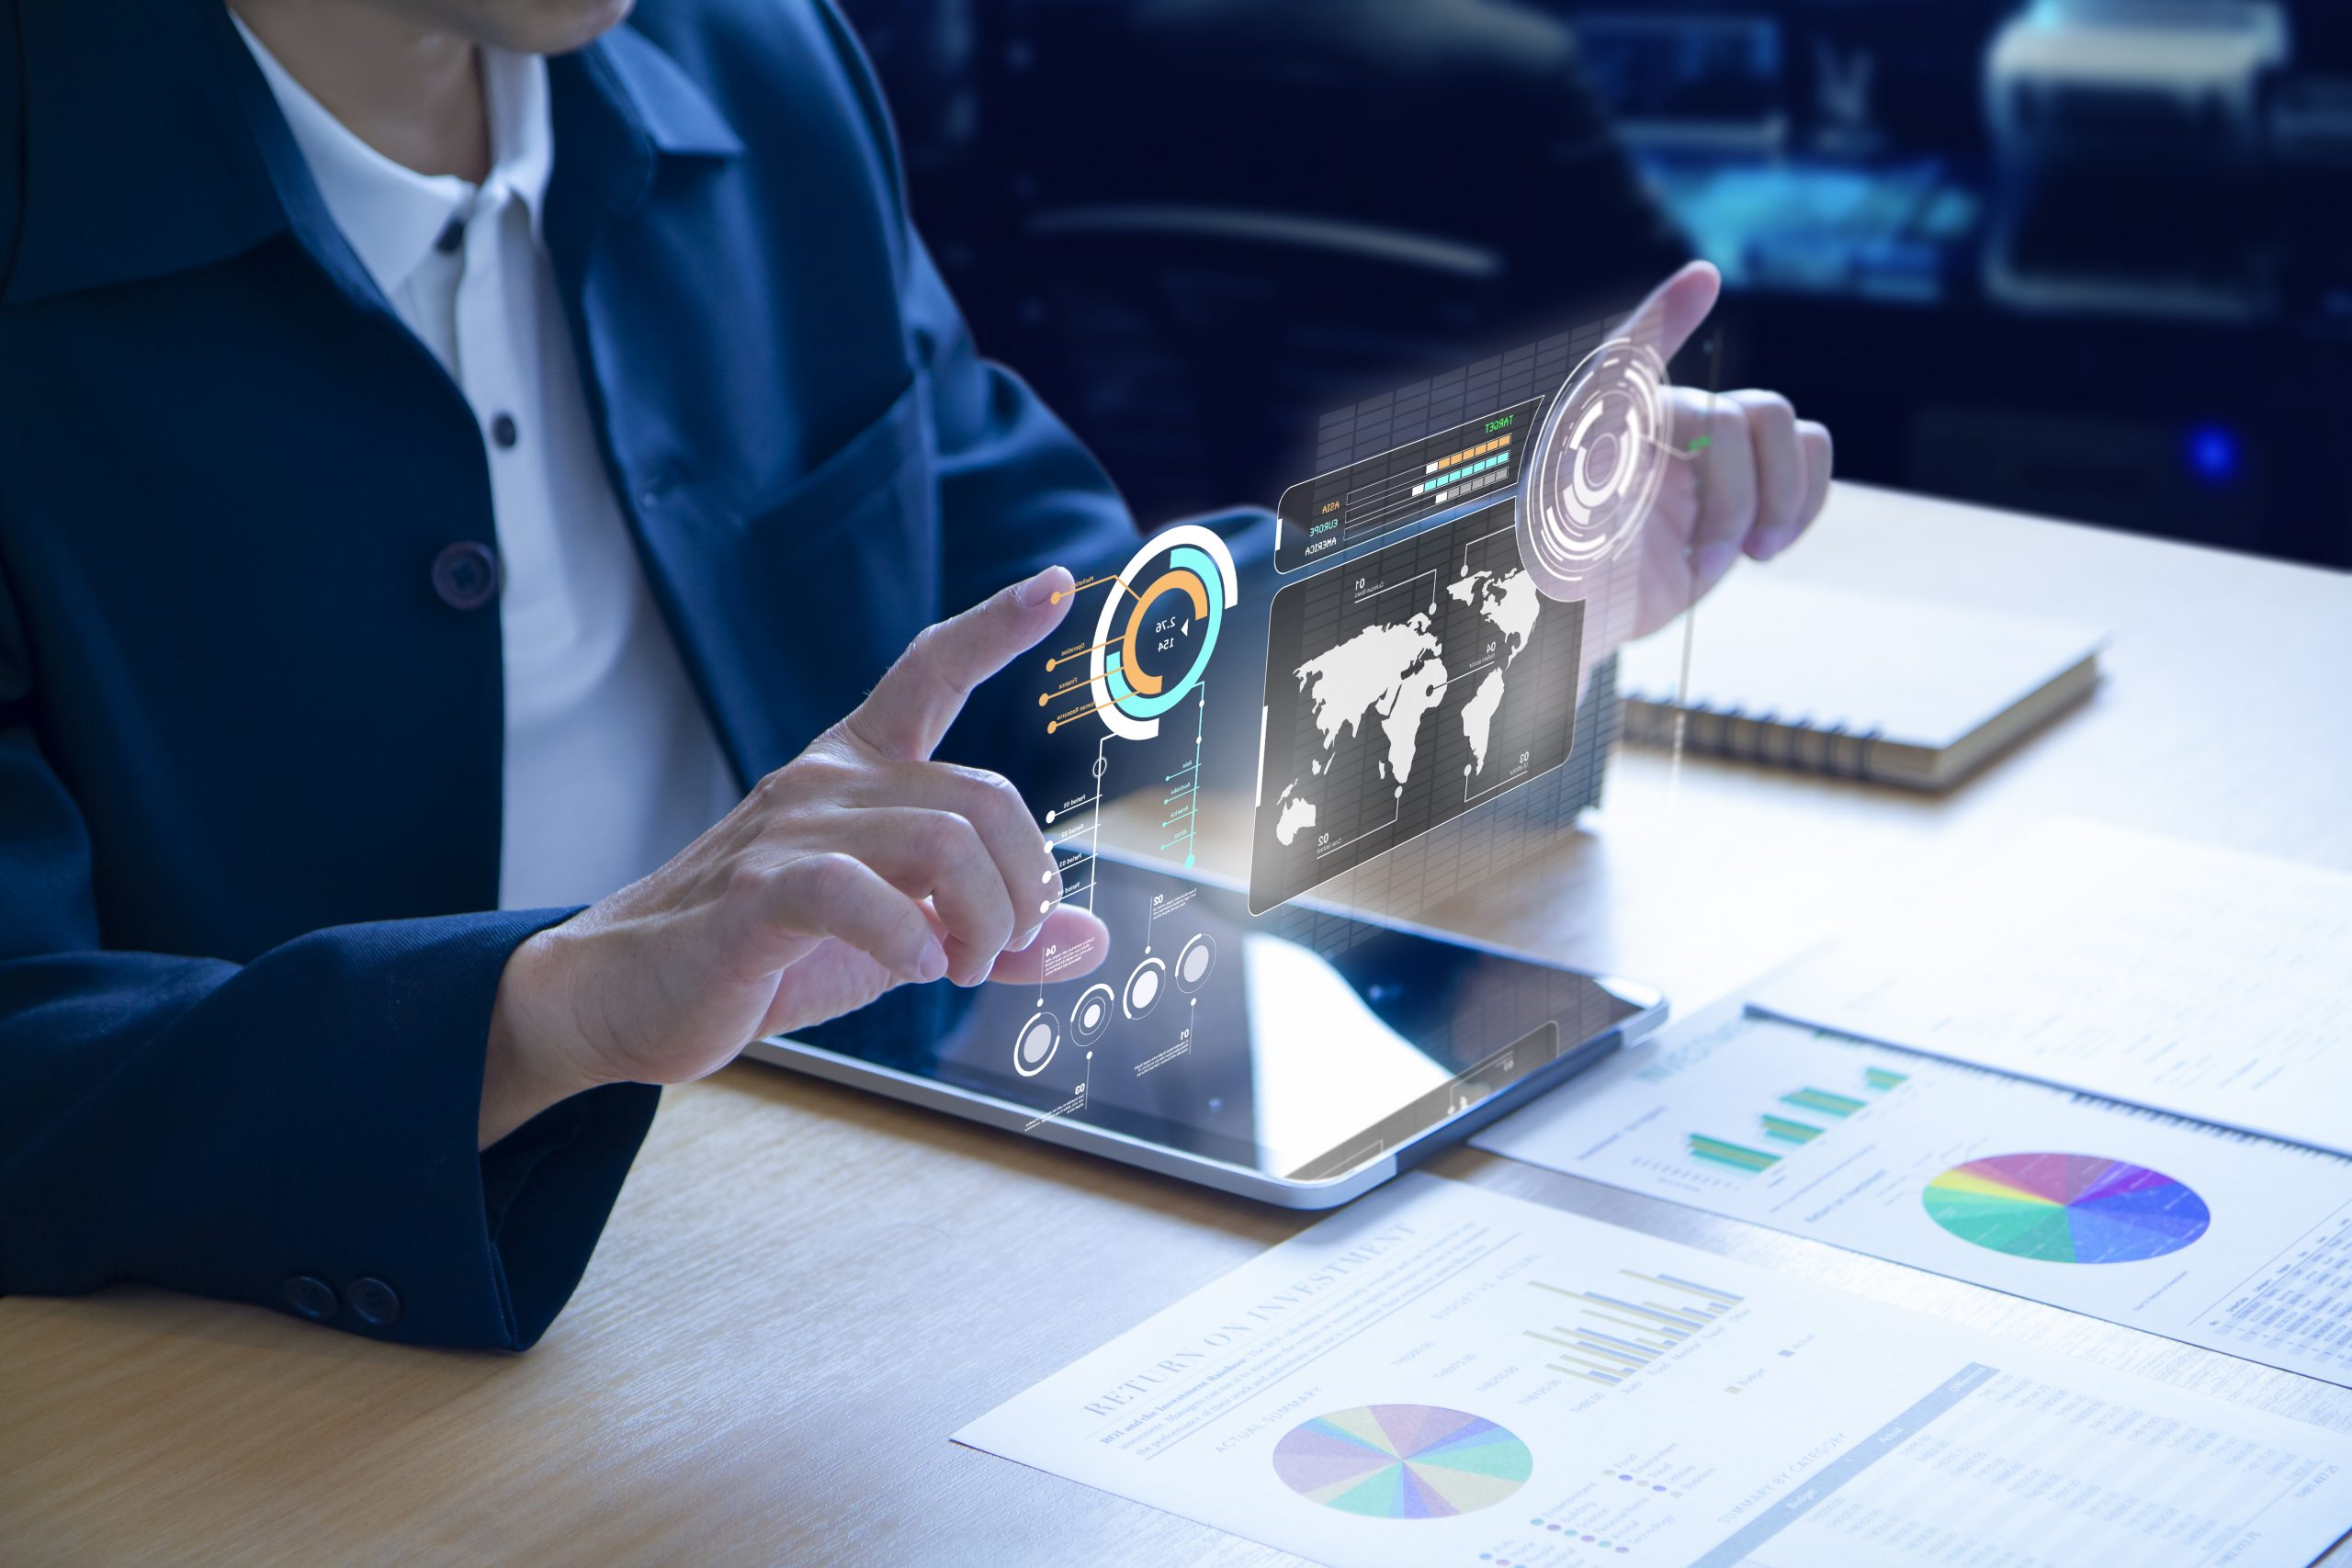 Futuristic business investment information technology